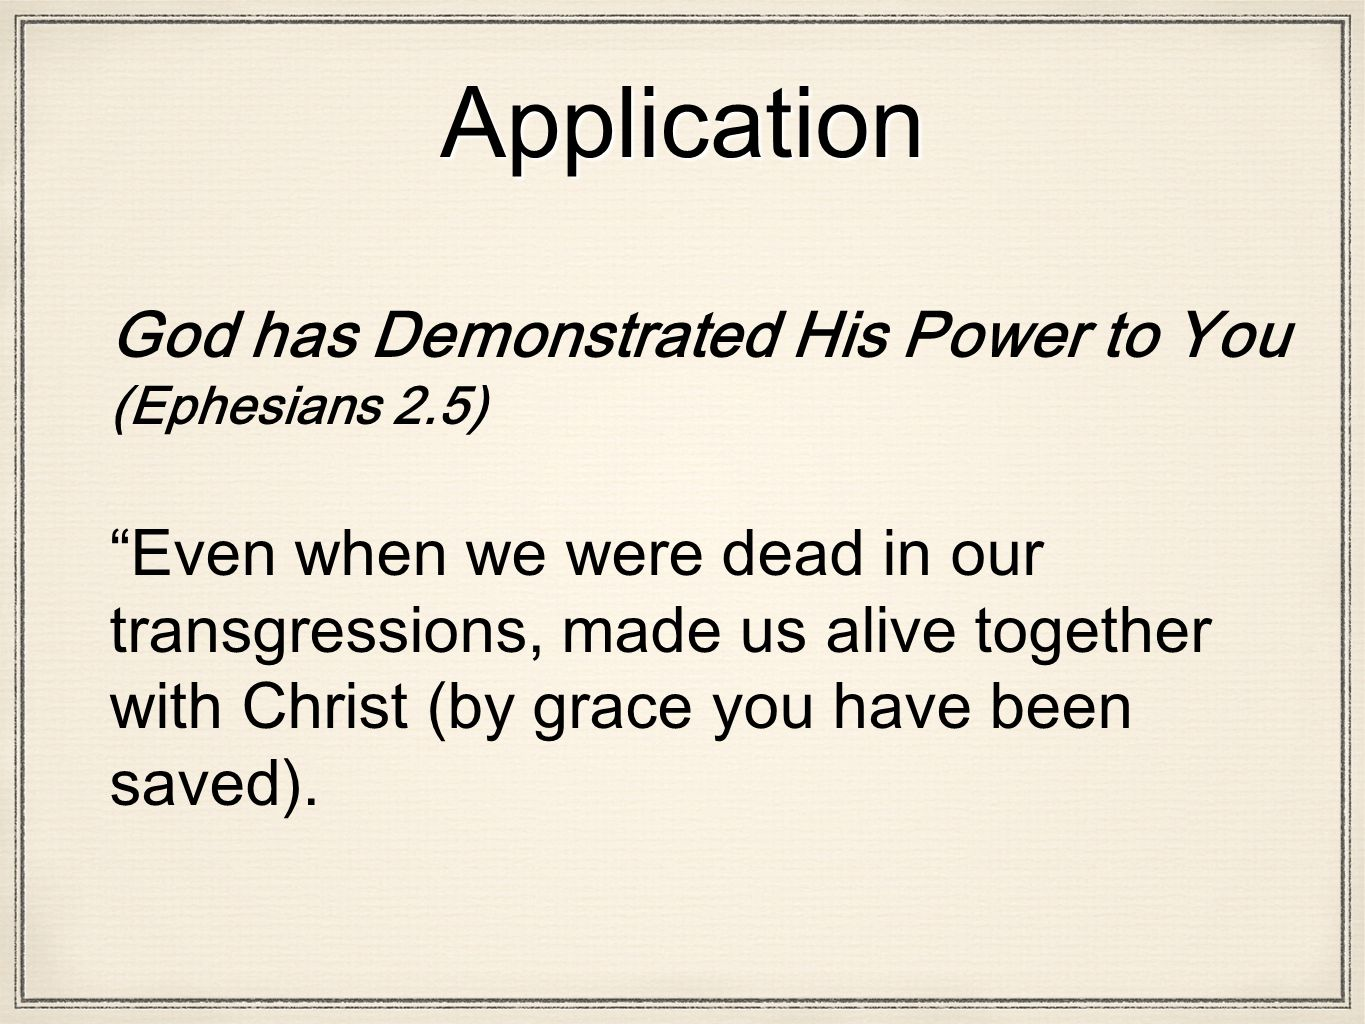 Application God has Demonstrated His Power to You (Ephesians 2.5) Even when we were dead in our transgressions, made us alive together with Christ (by grace you have been saved).